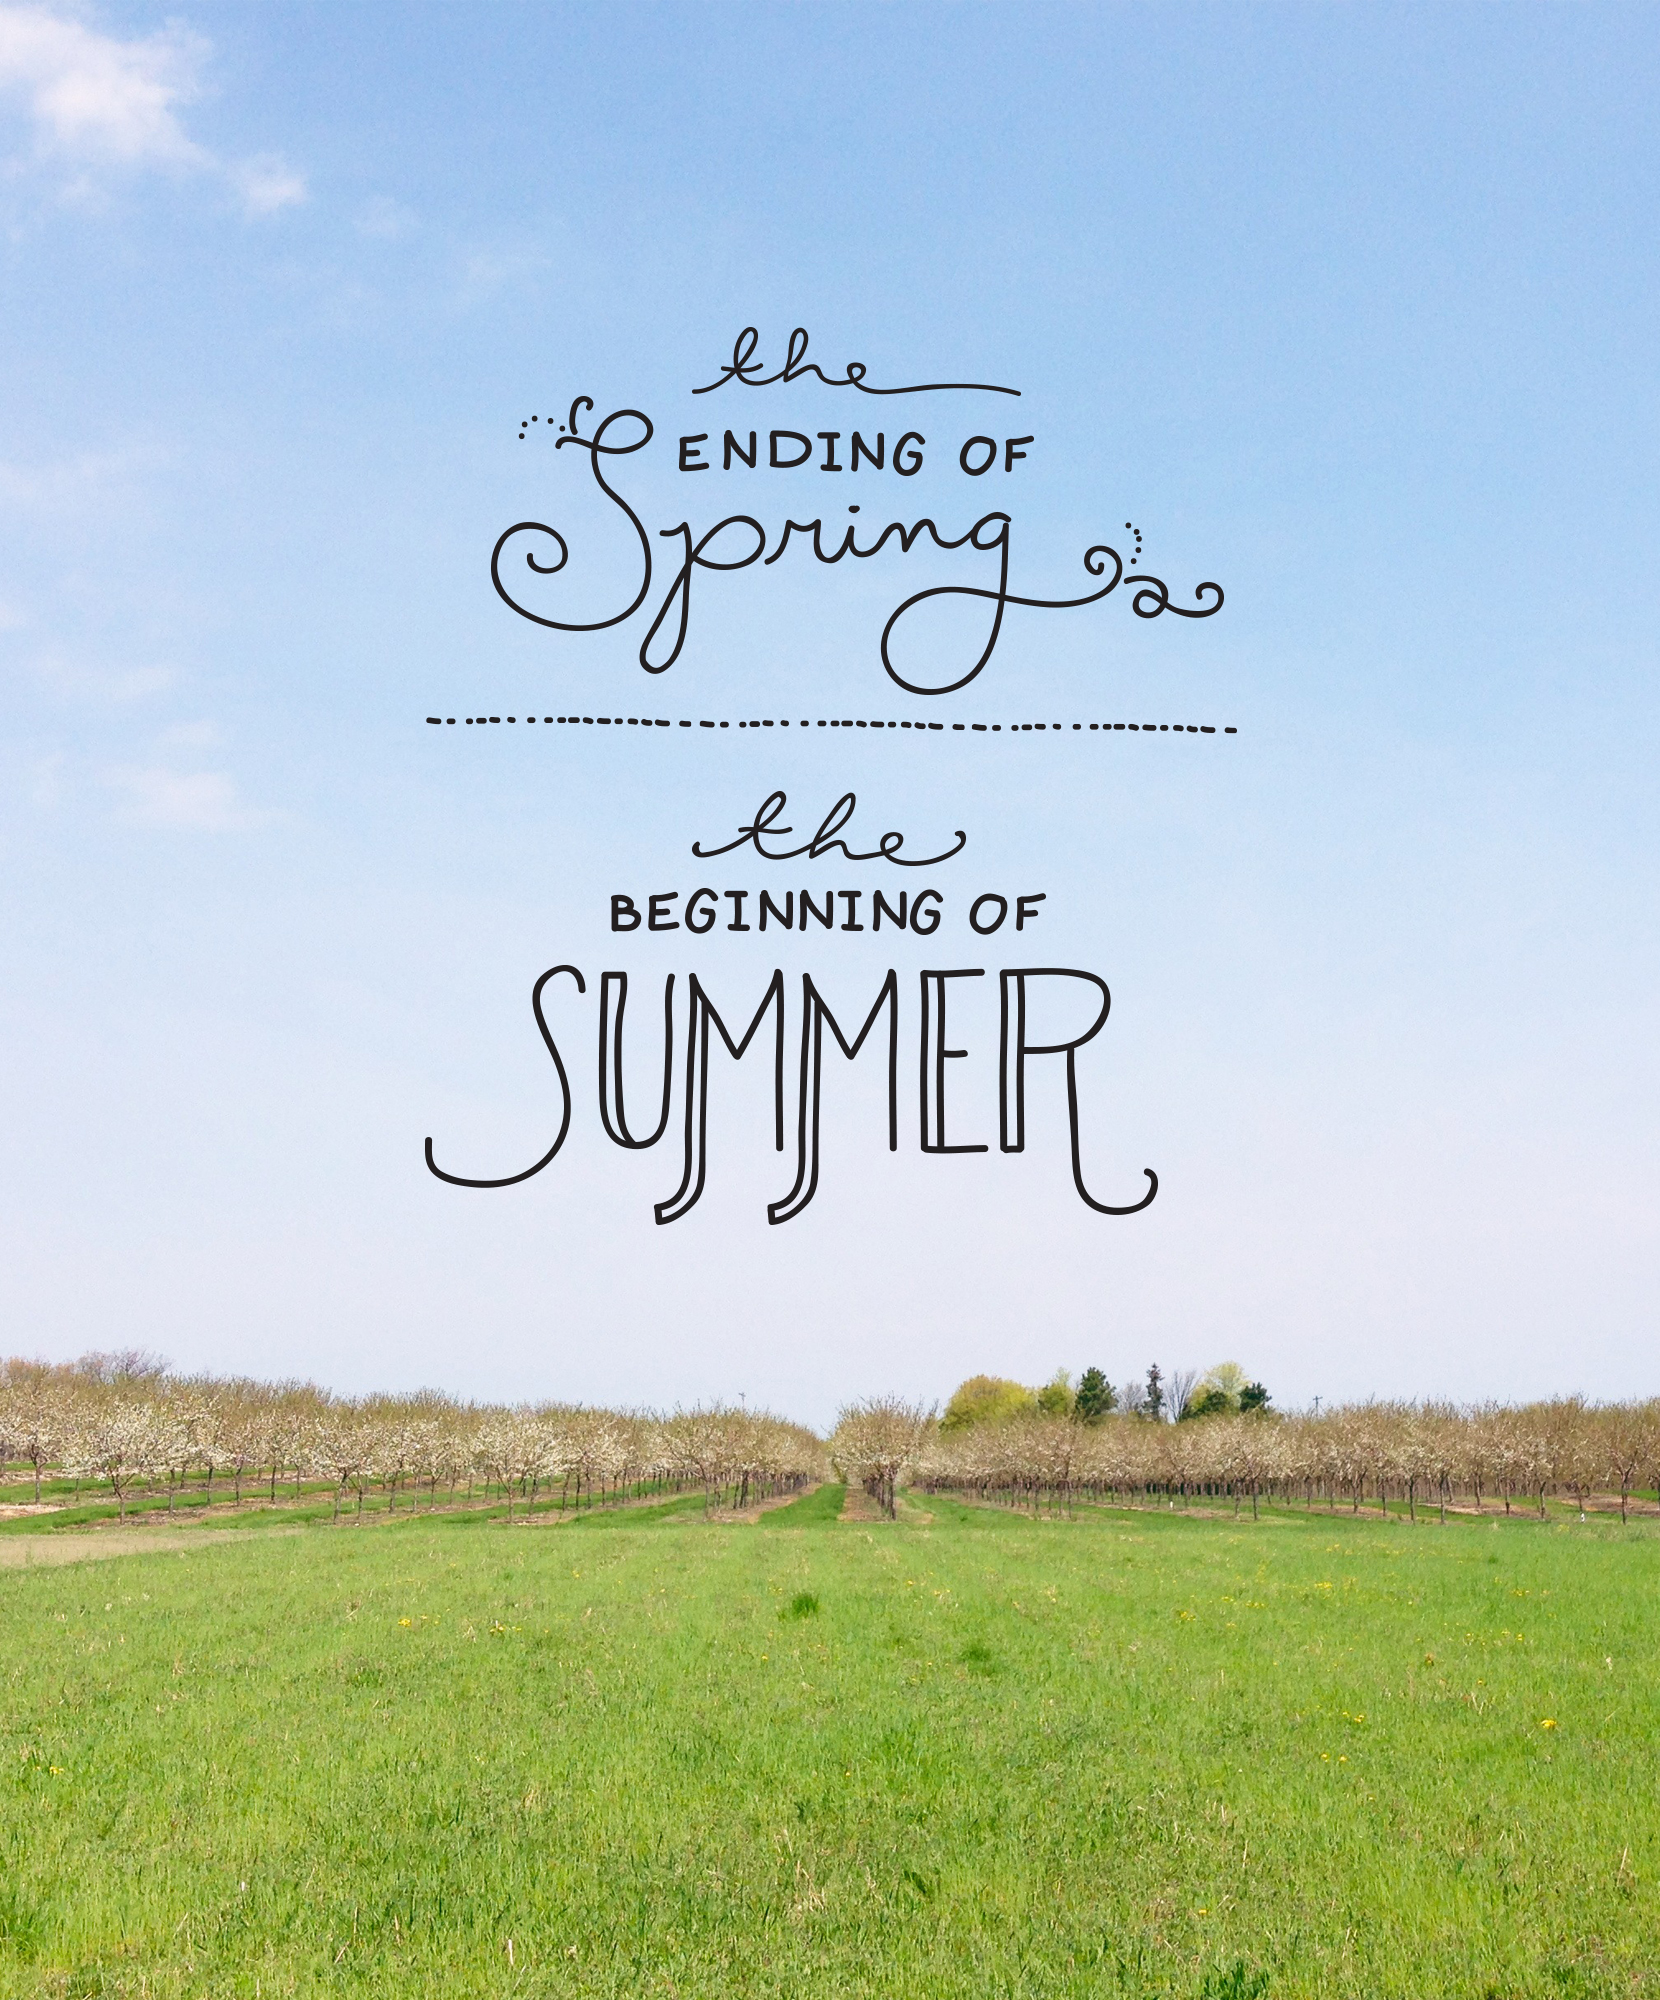 Last Saturday Of The Year Quotes: Start Of Summer Quotes. QuotesGram